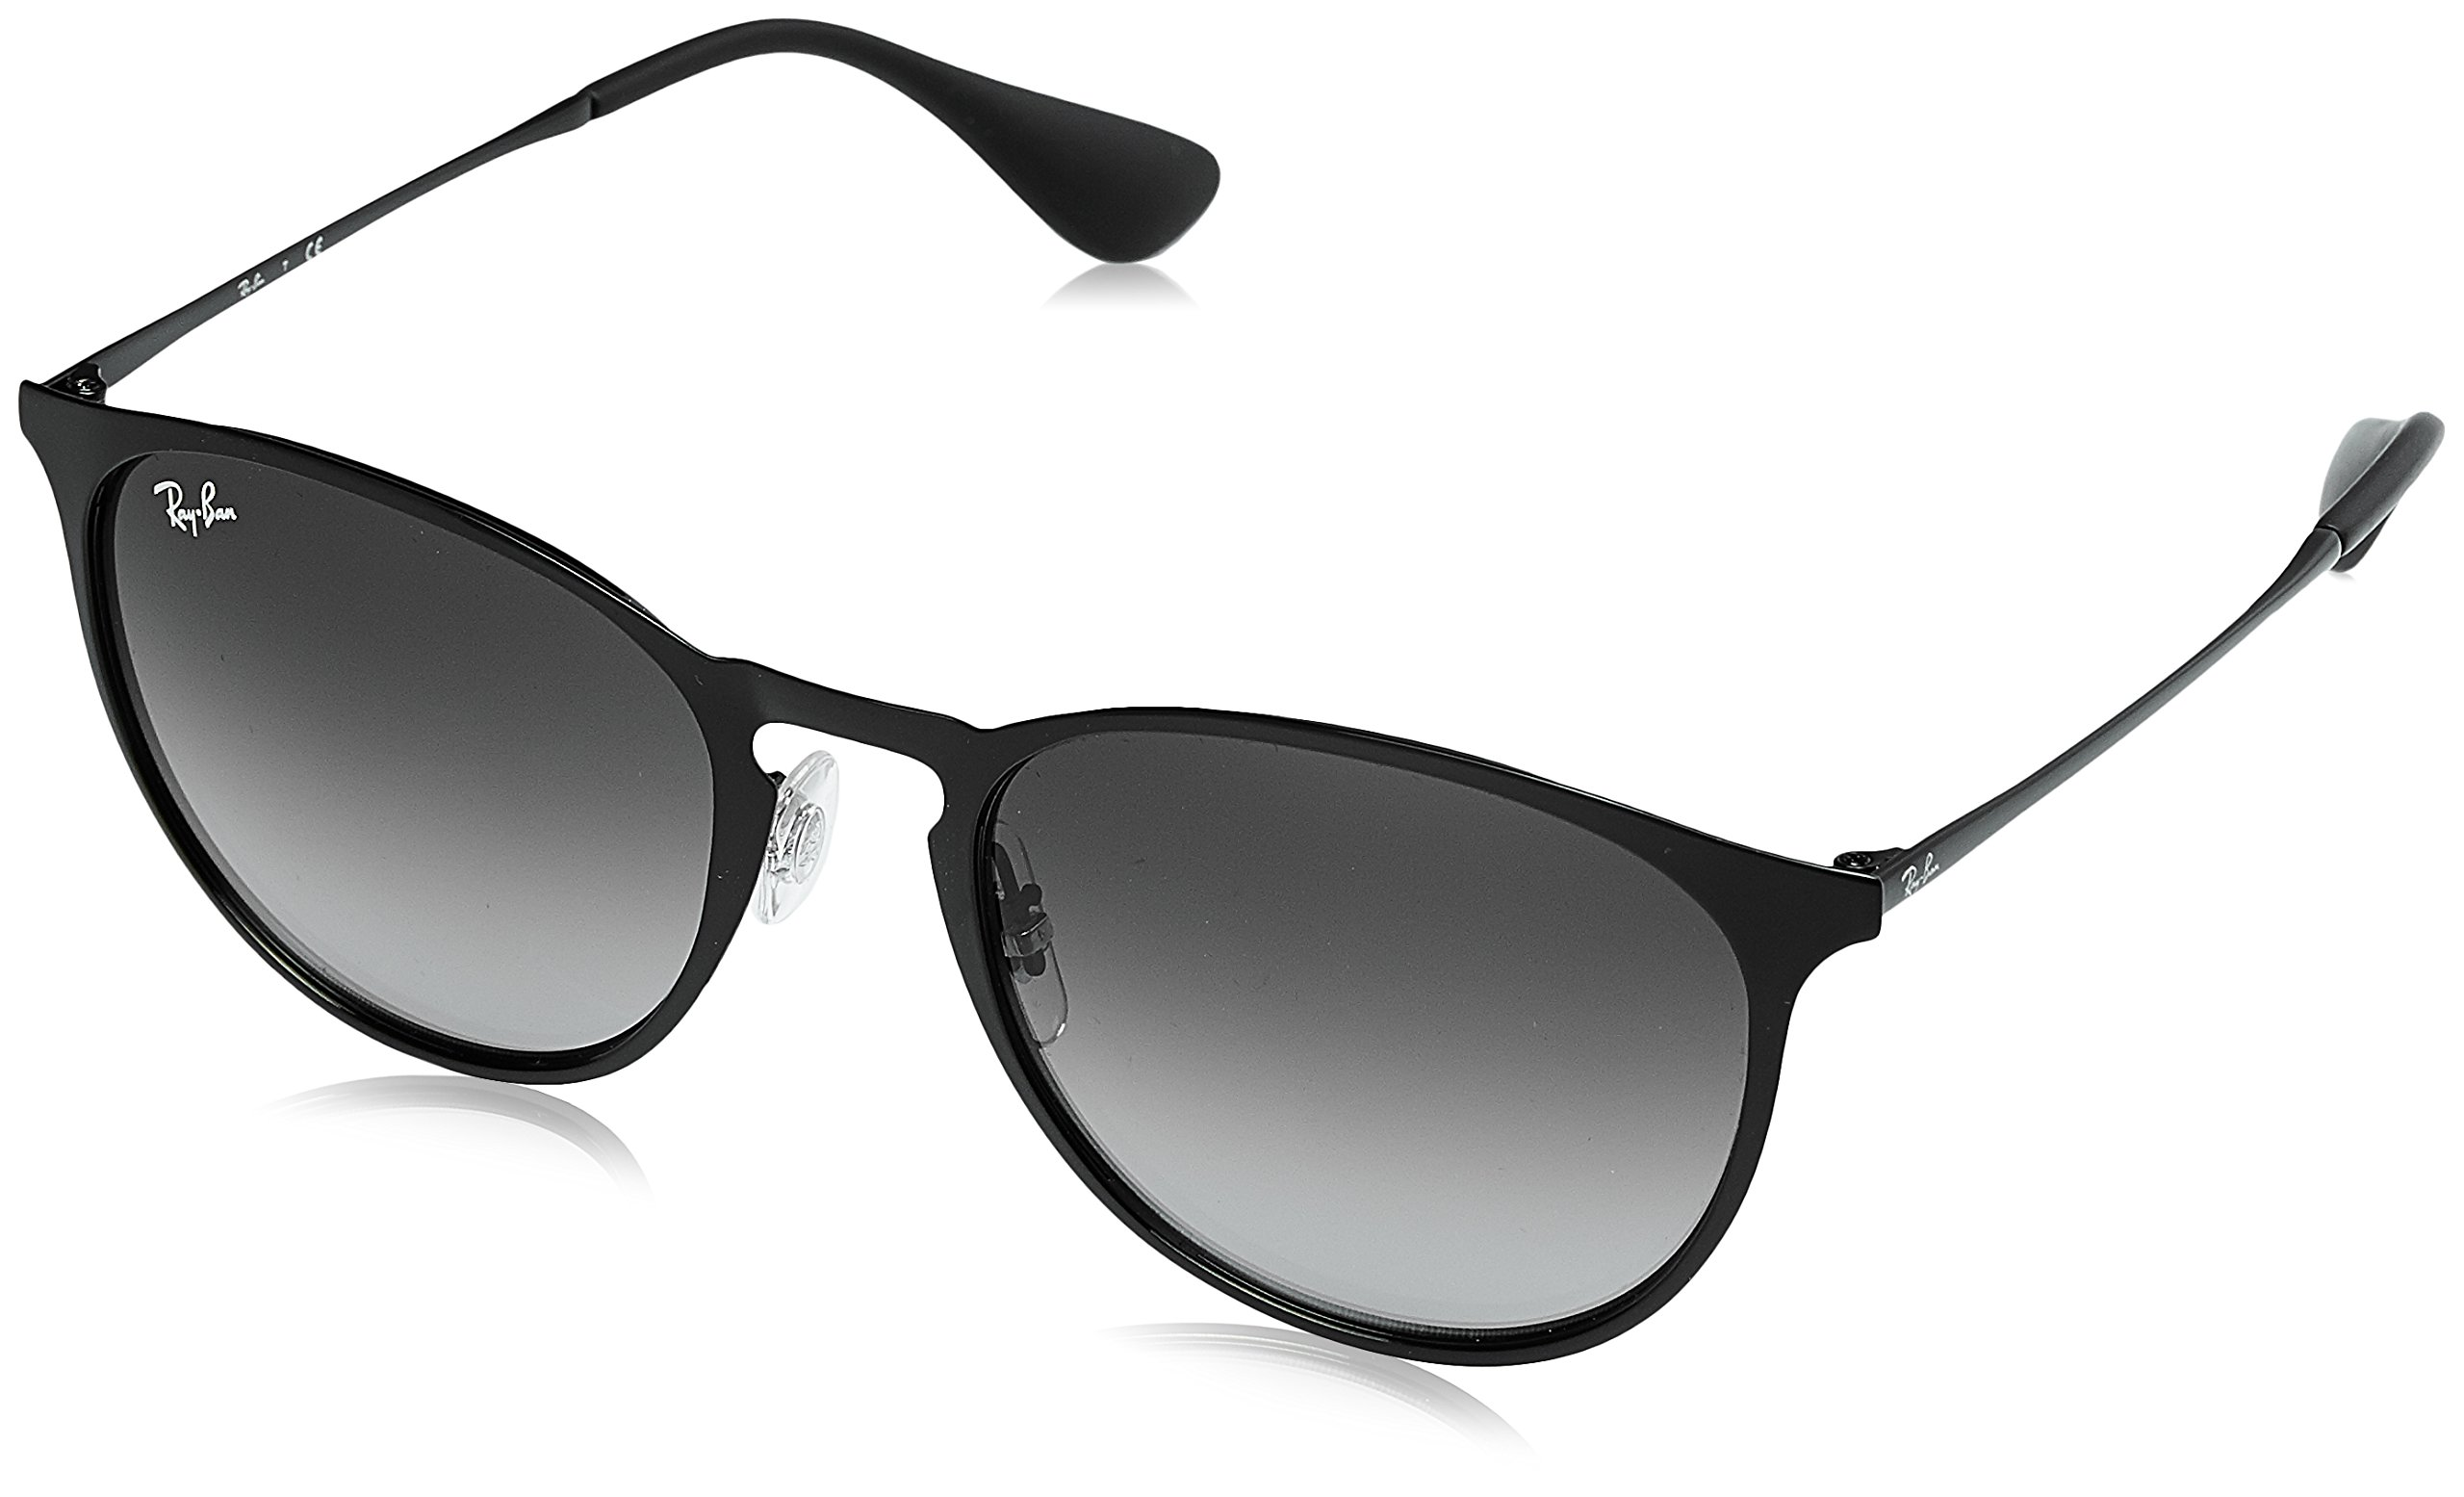 Ray-Ban METAL UNISEX SUNGLASS - BLACK Frame GRAY GRADIENT Lenses 54mm Non-Polarized by Ray-Ban